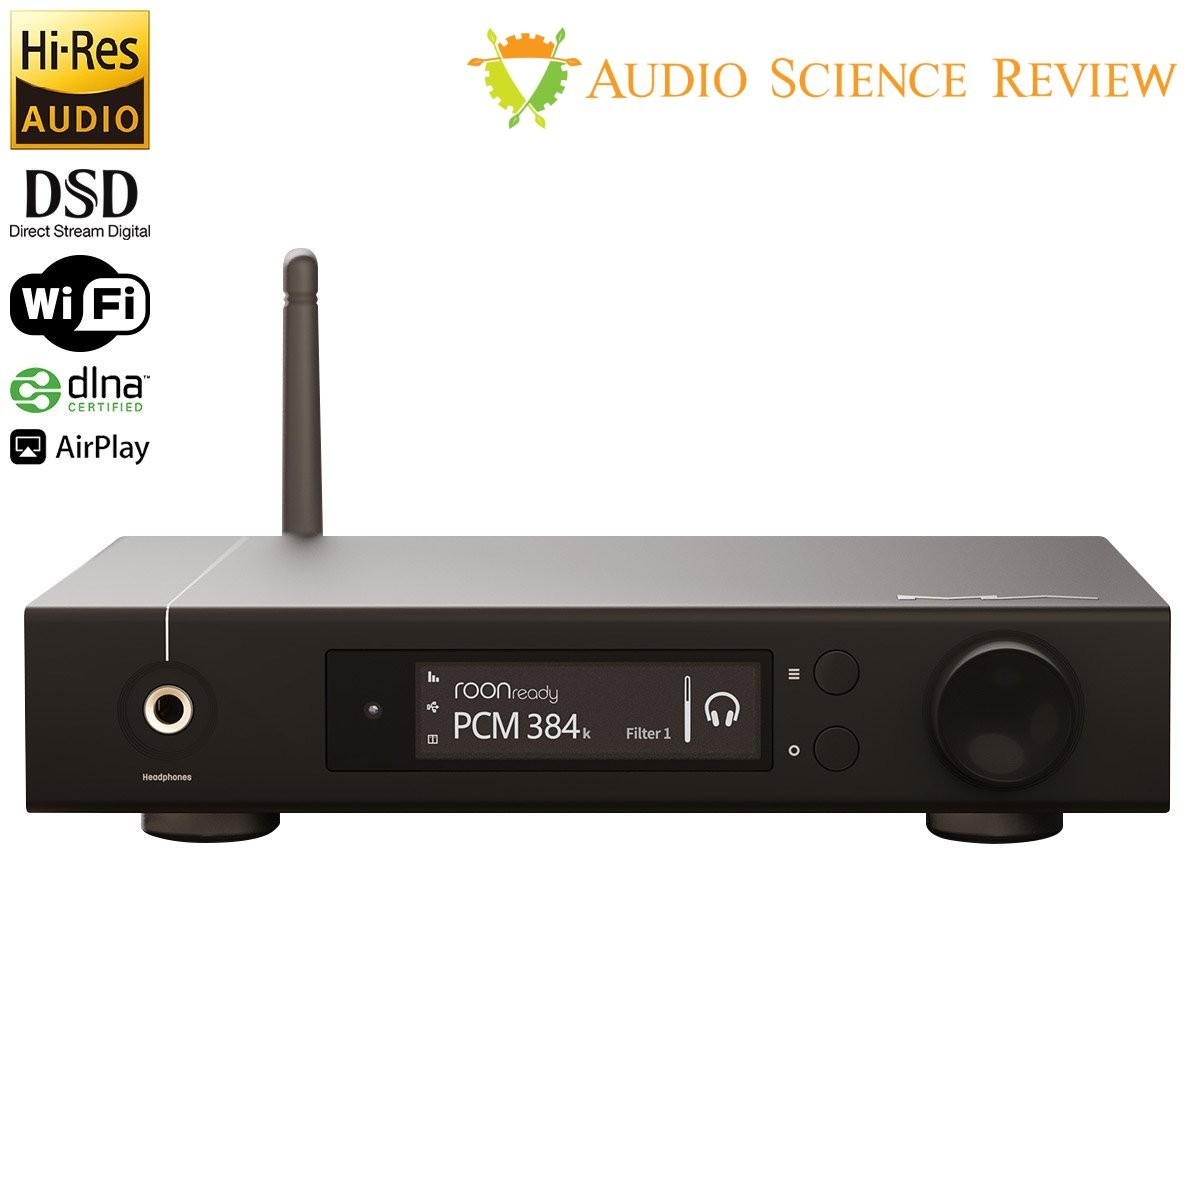 MATRIX ELEMENT I DAC Network Player ES9028PRO XMOS WiFi DLNA AirPlay 32bit 768kHz DSD512